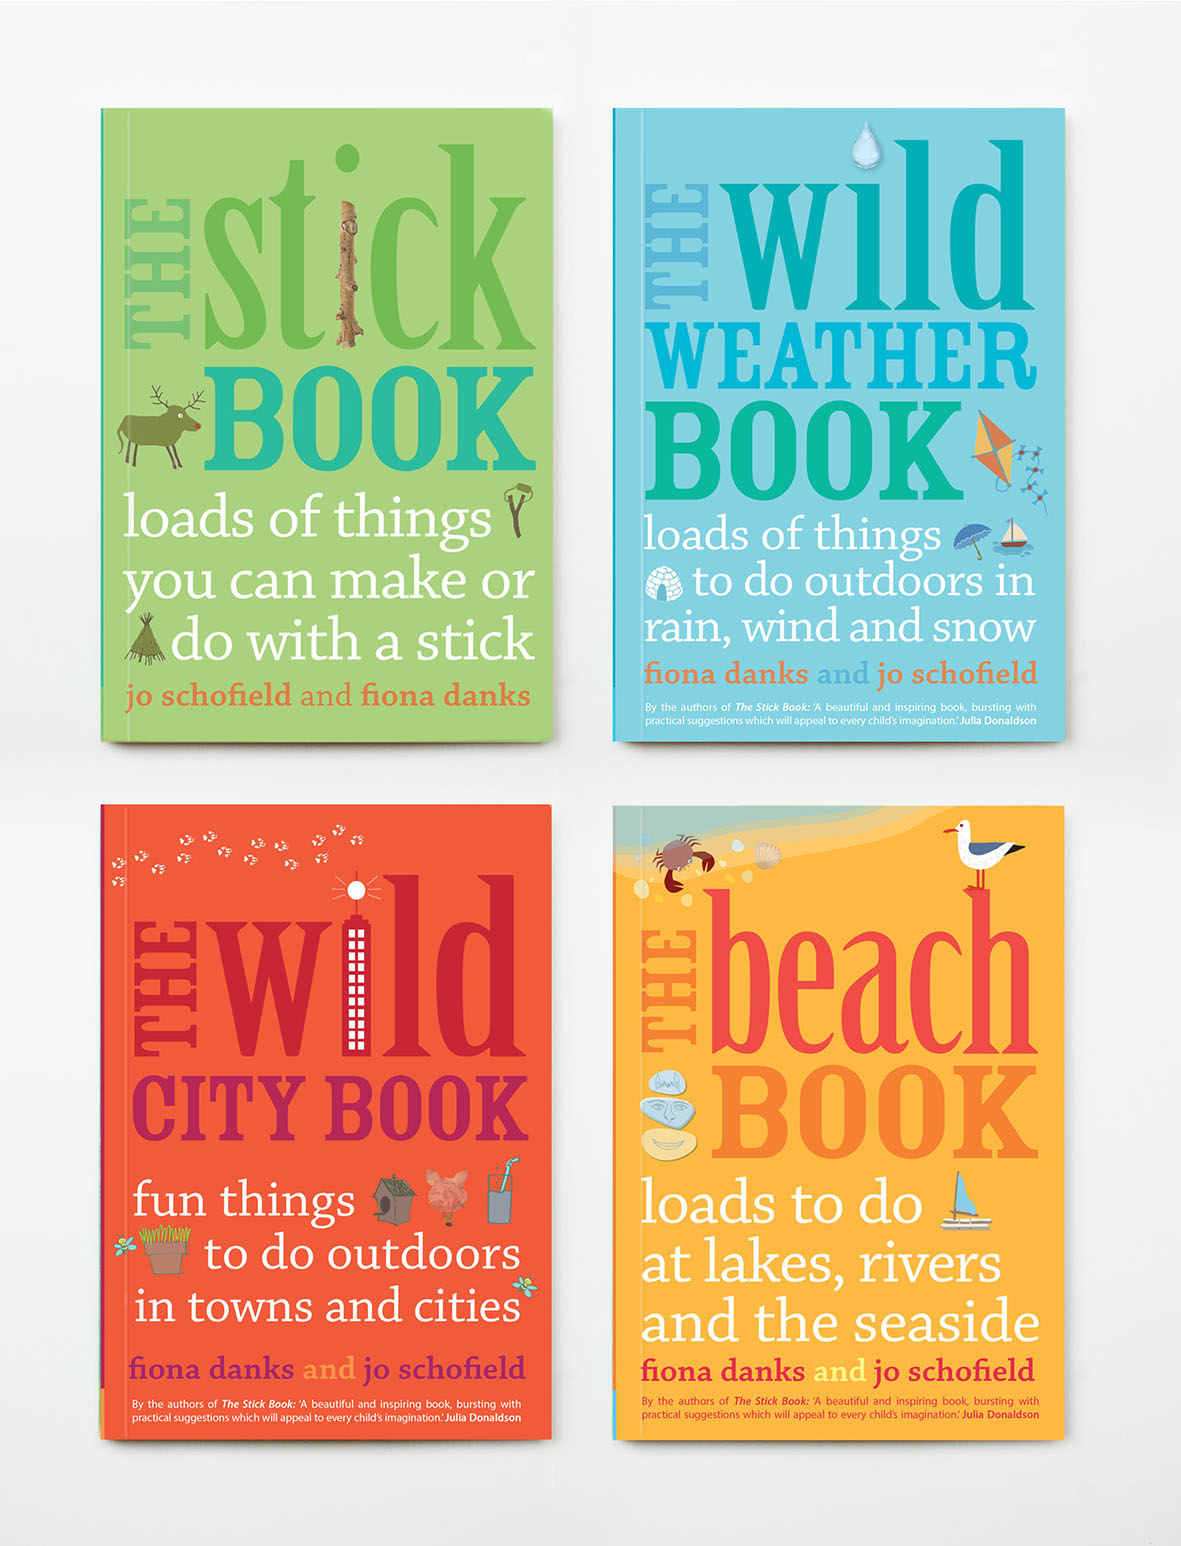 The Stick Book series